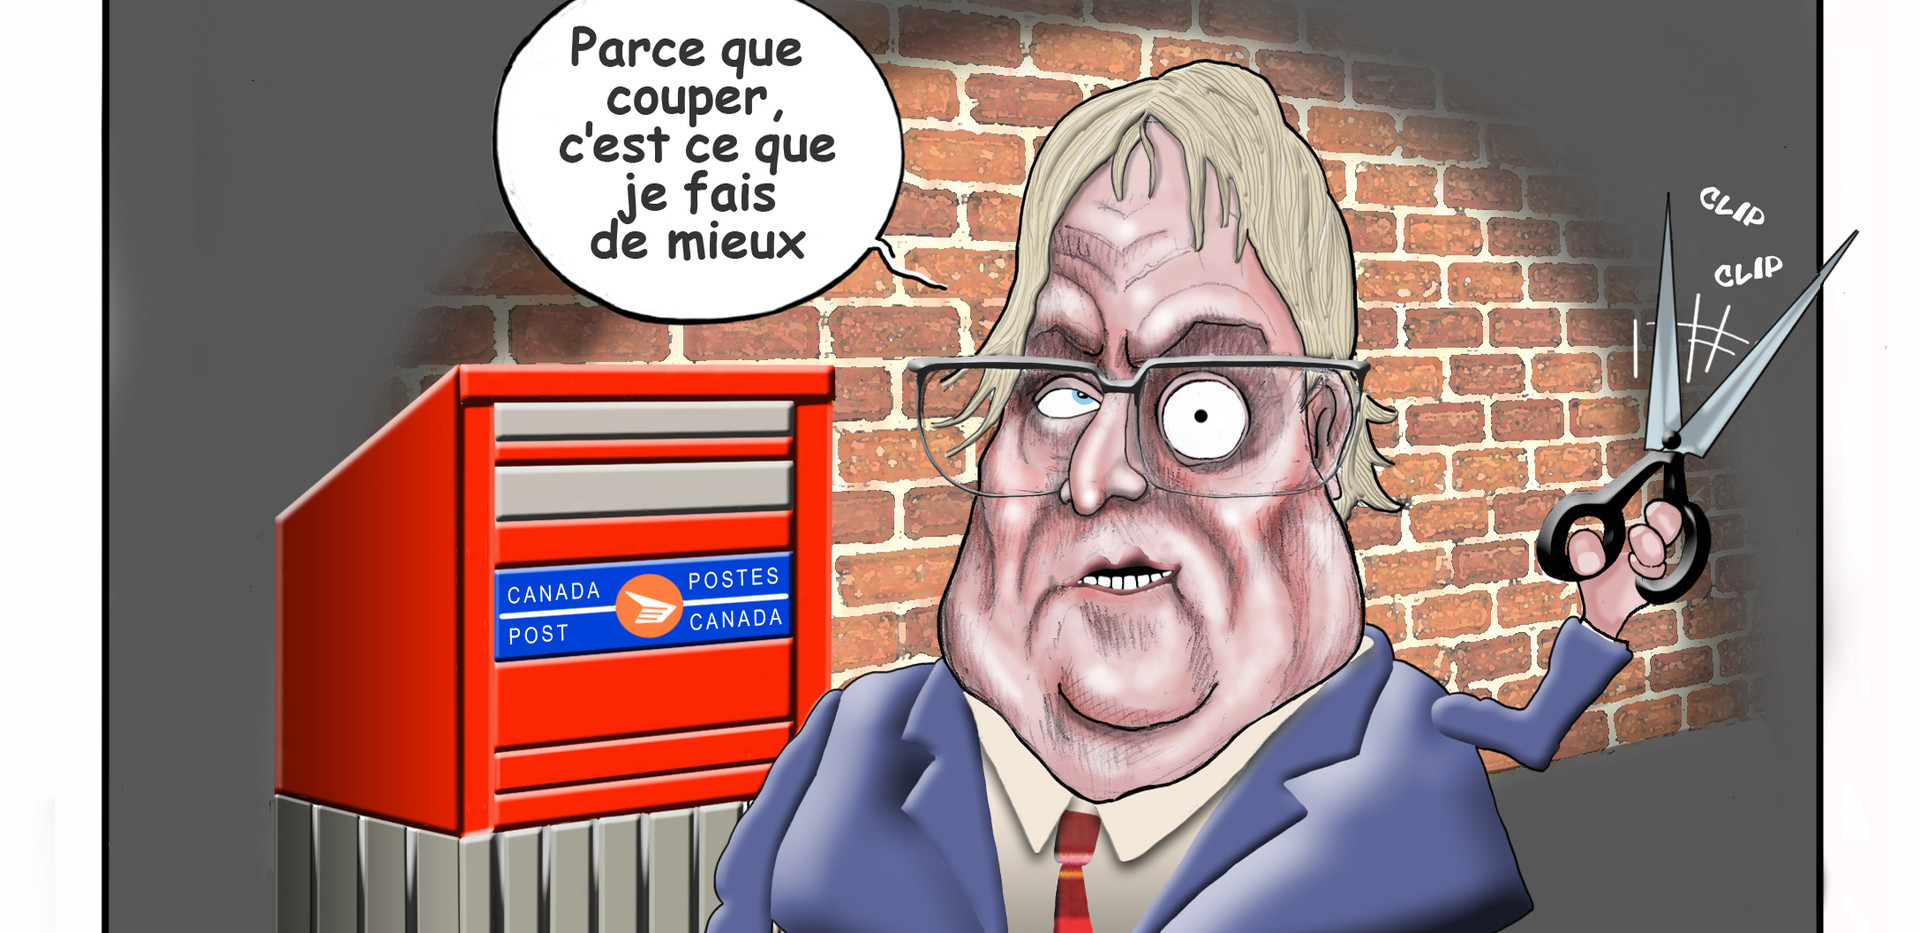 action_chomage_cote_nord_caricature_gaetan_barrette